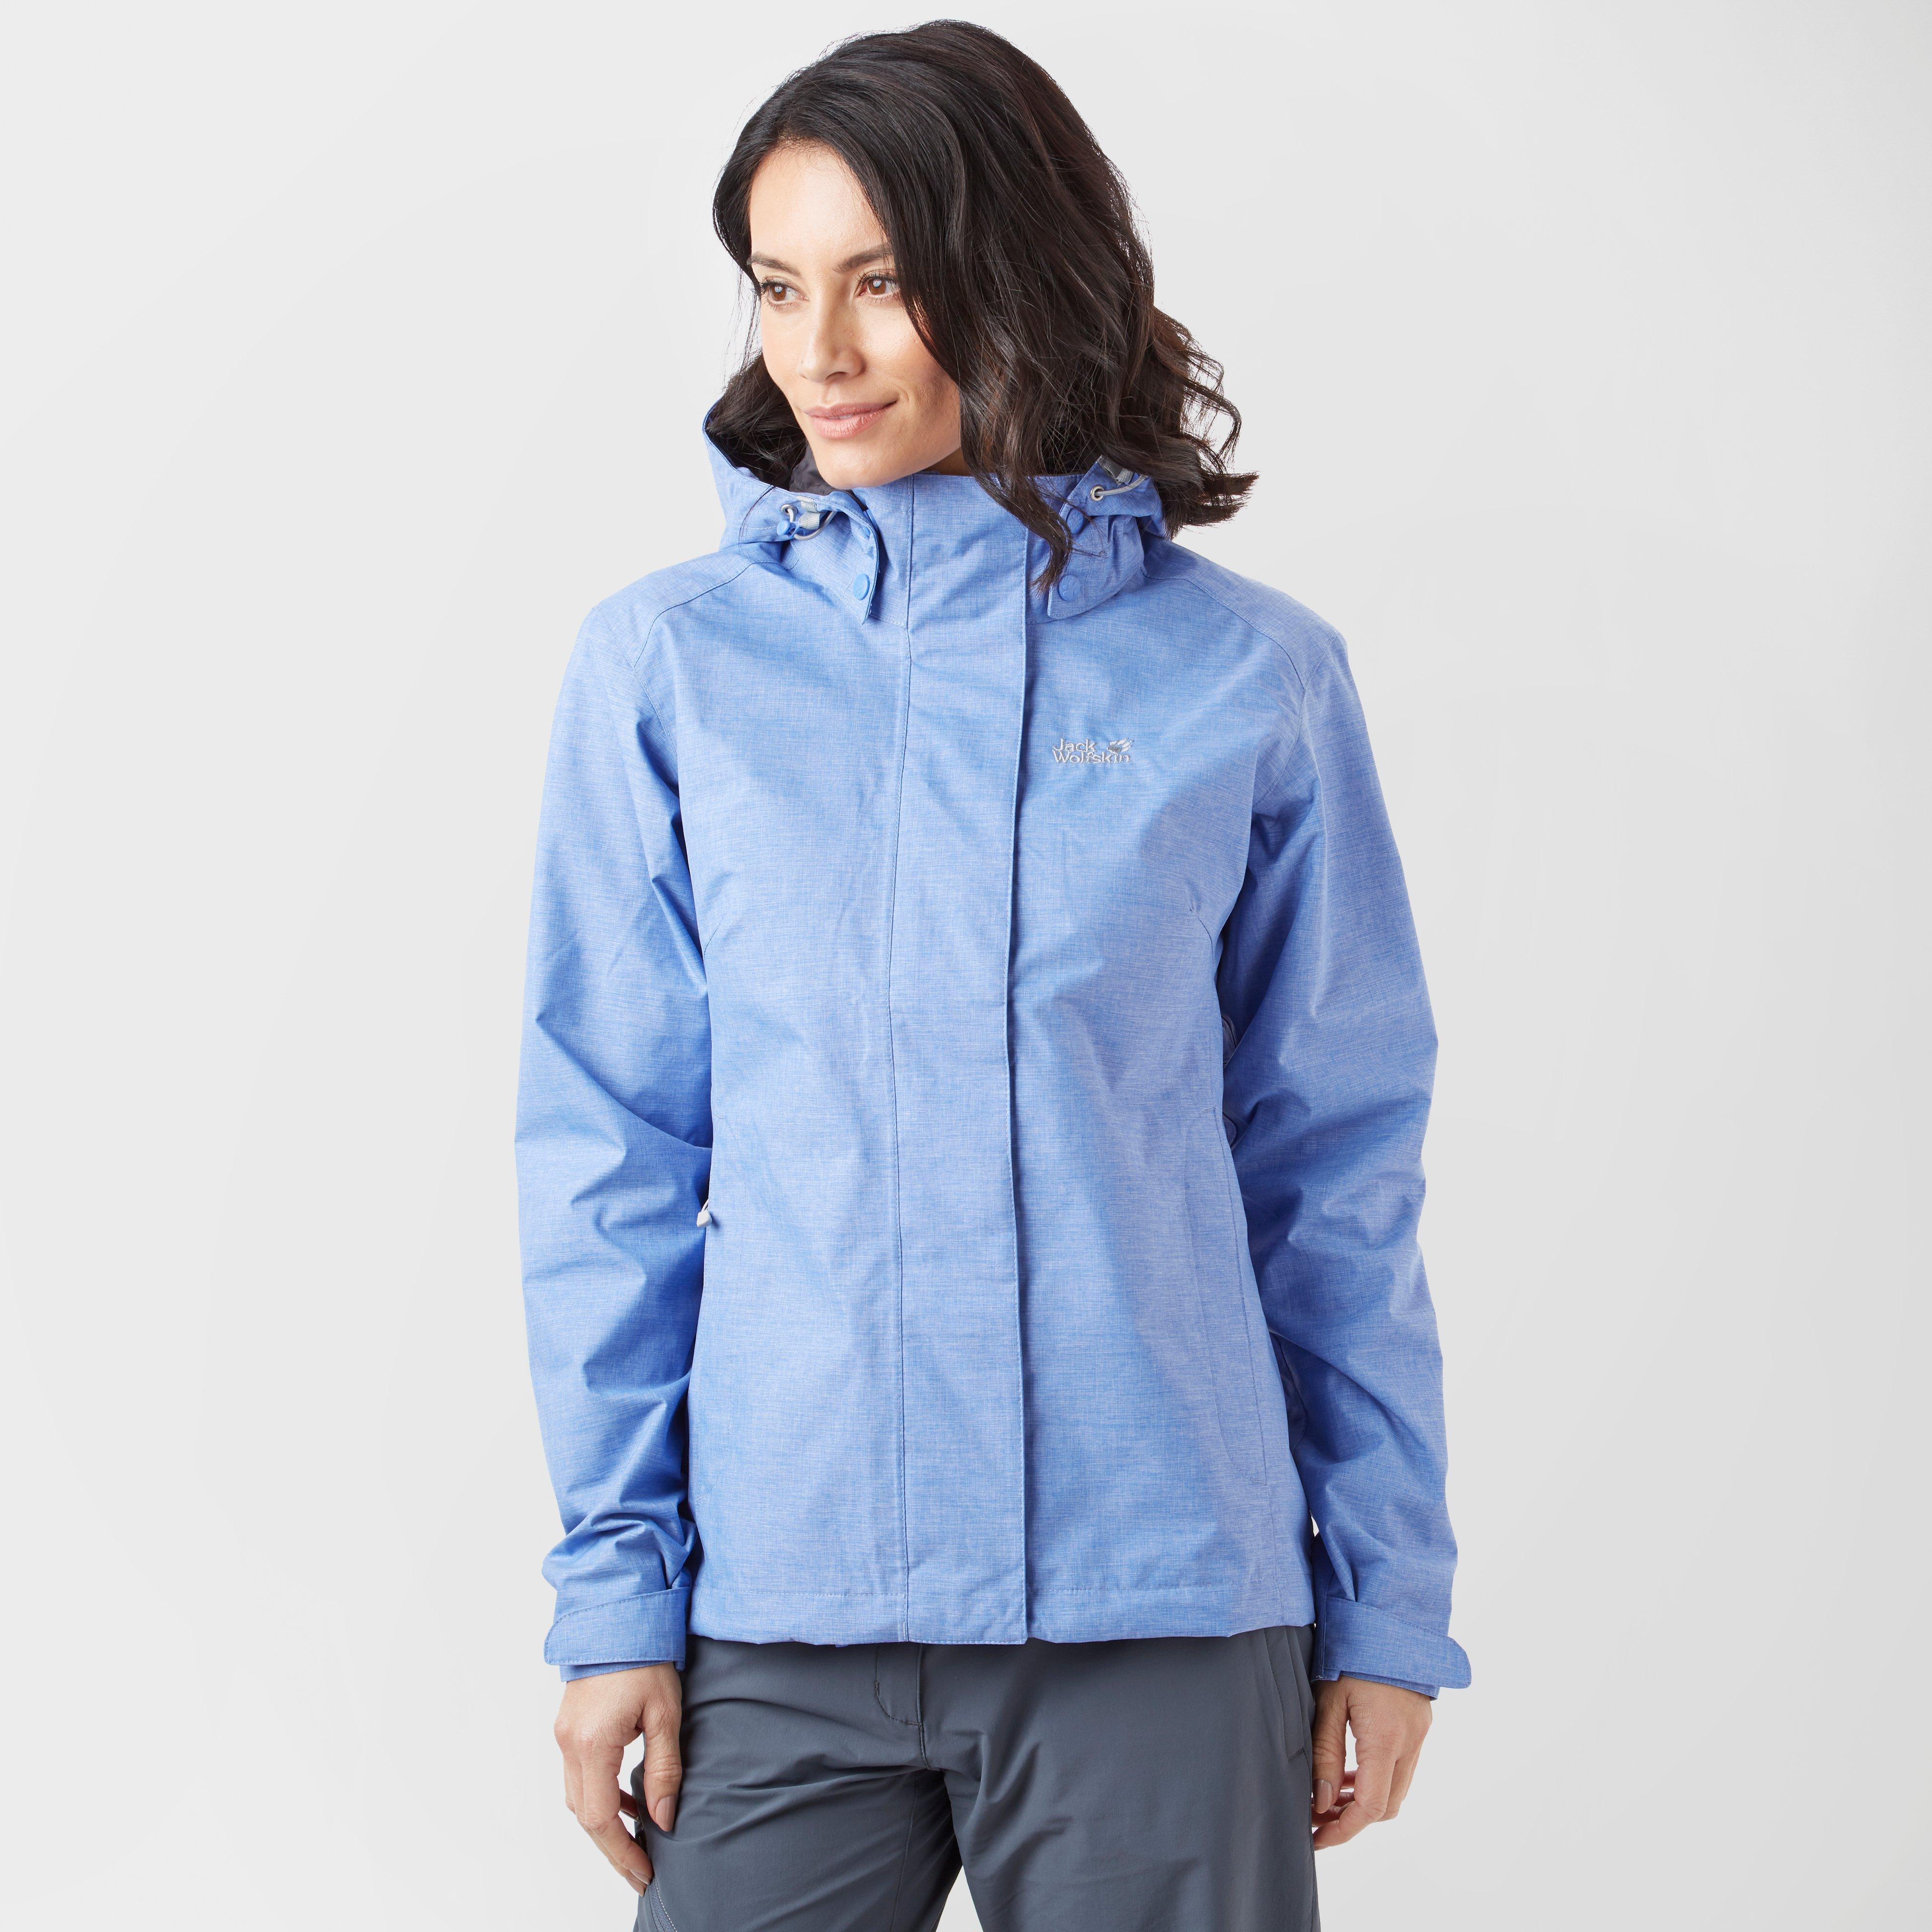 Jack Wolfskin Women's Paradise Valley Jacket, Blue